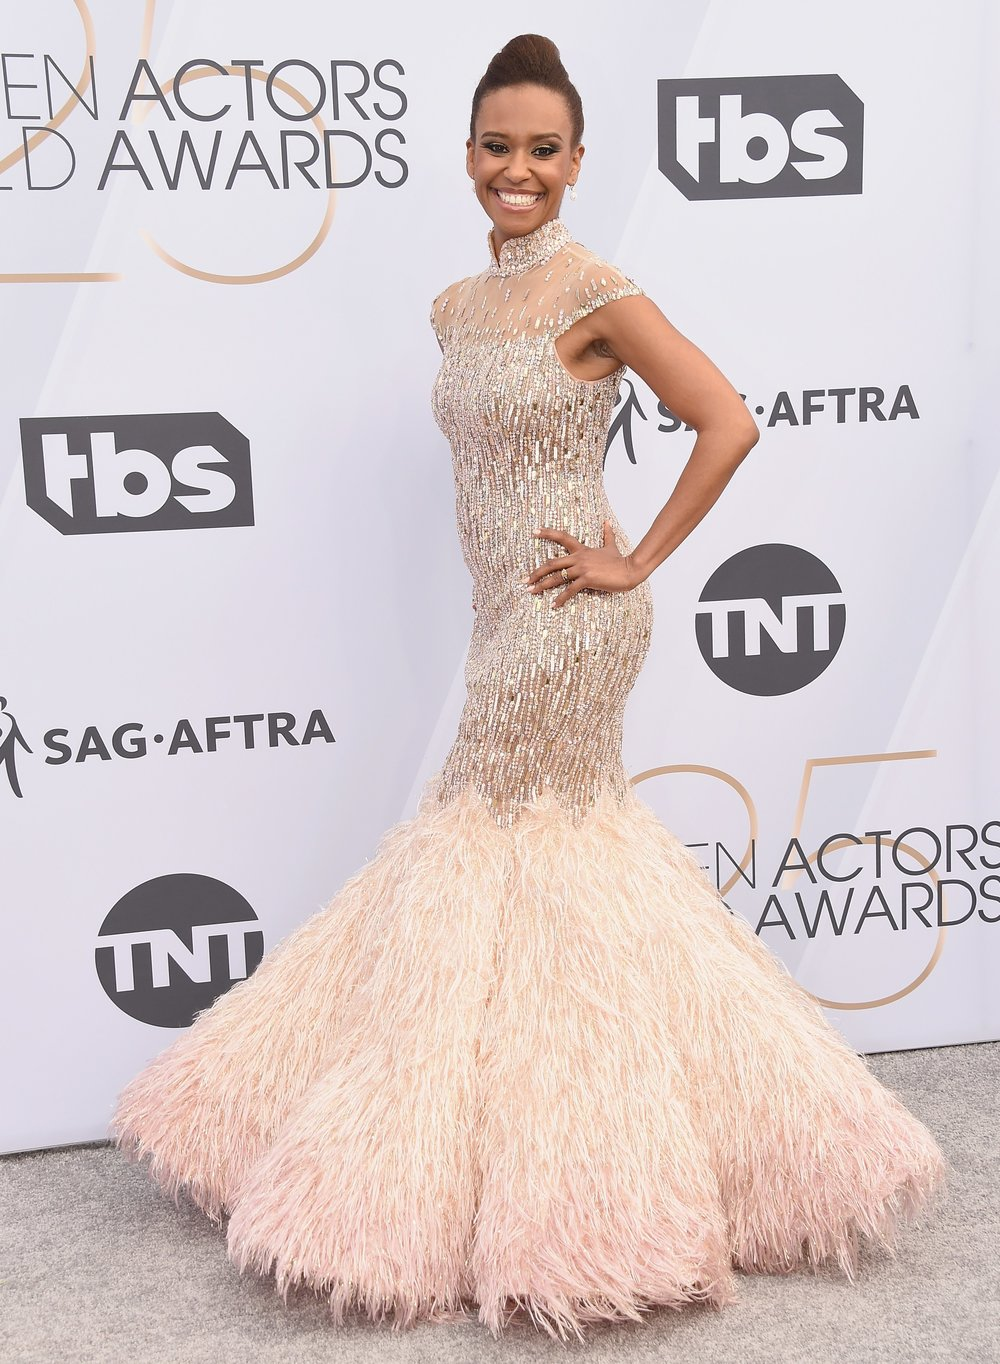 SAG AWARDS 2019 RED CARPET RYAN MICHELLE BATHE.jpg